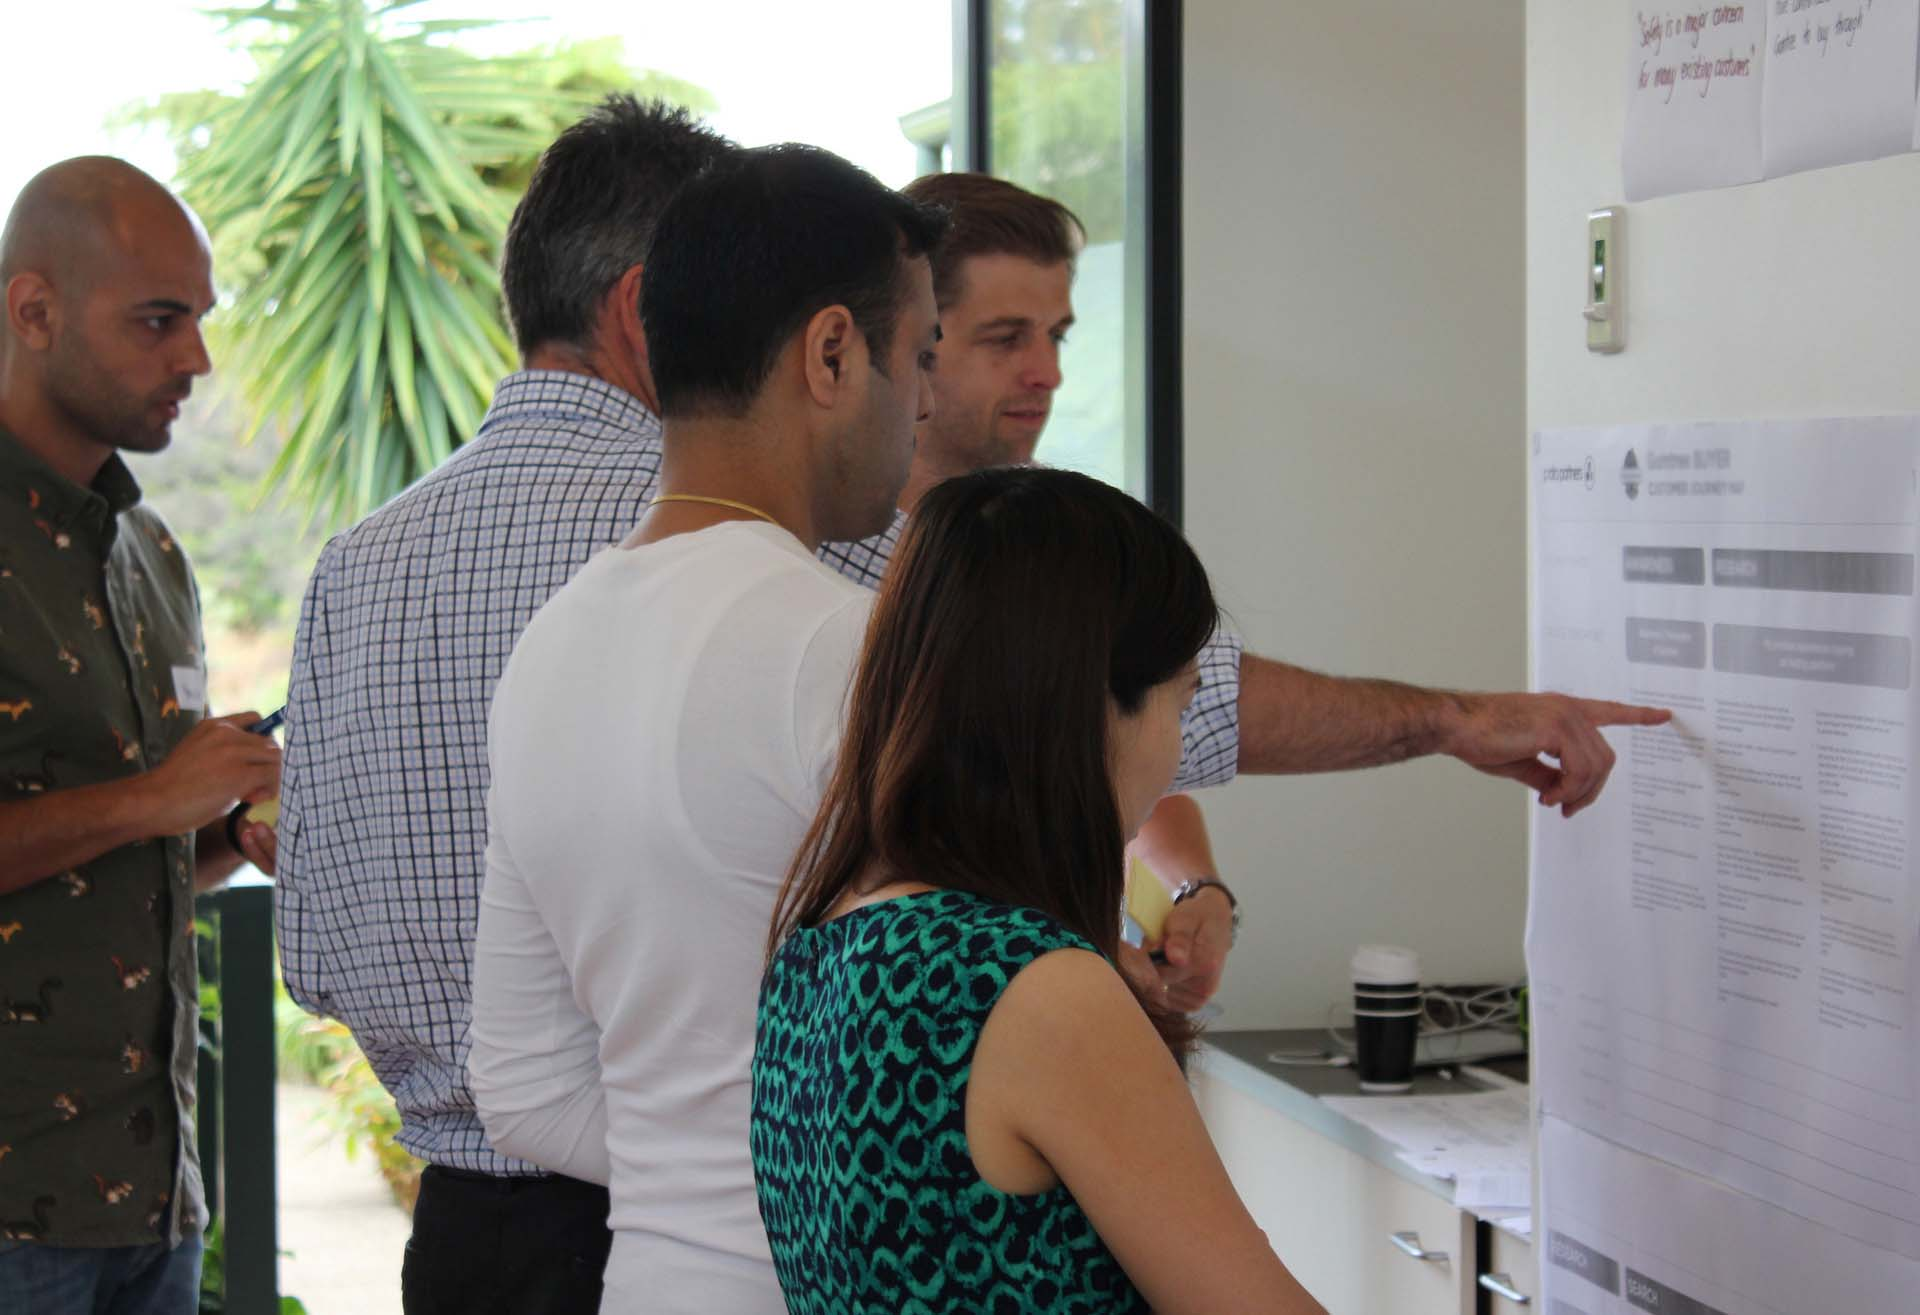 Proto employees engaged with a piece customer experience research